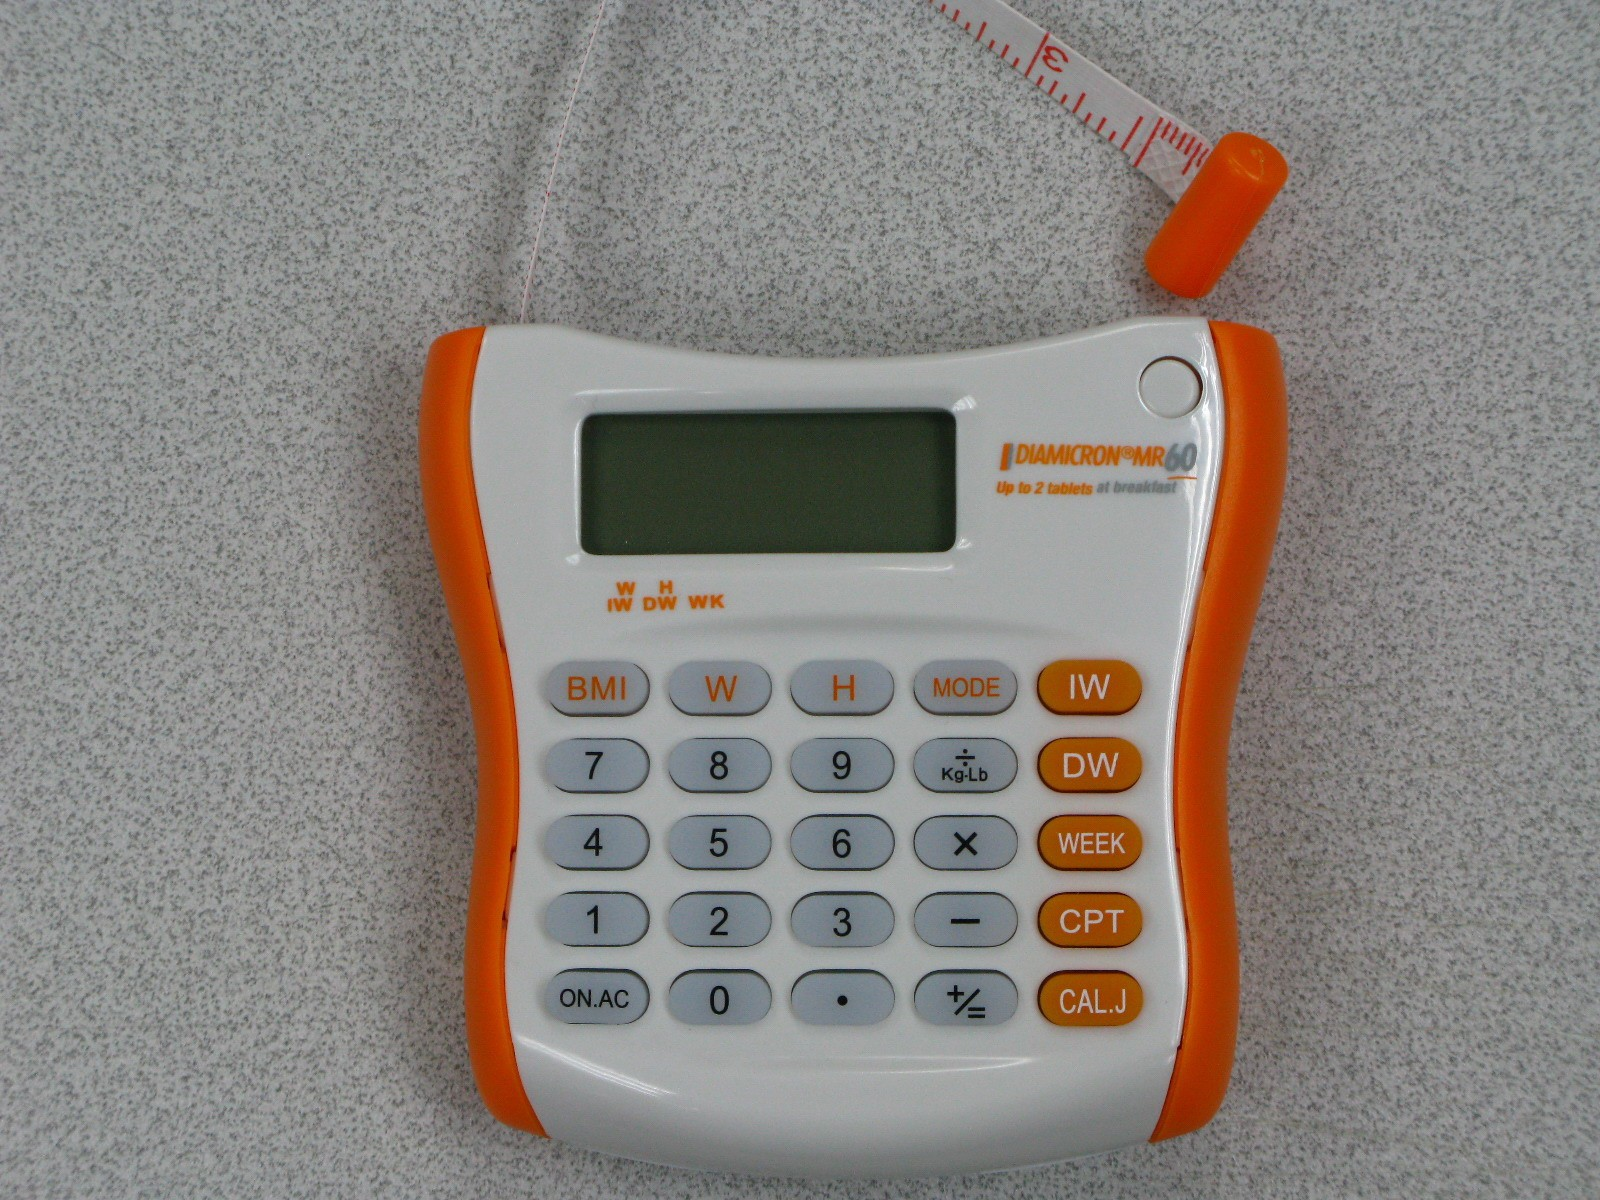 BMI Calculator With Tape Measure